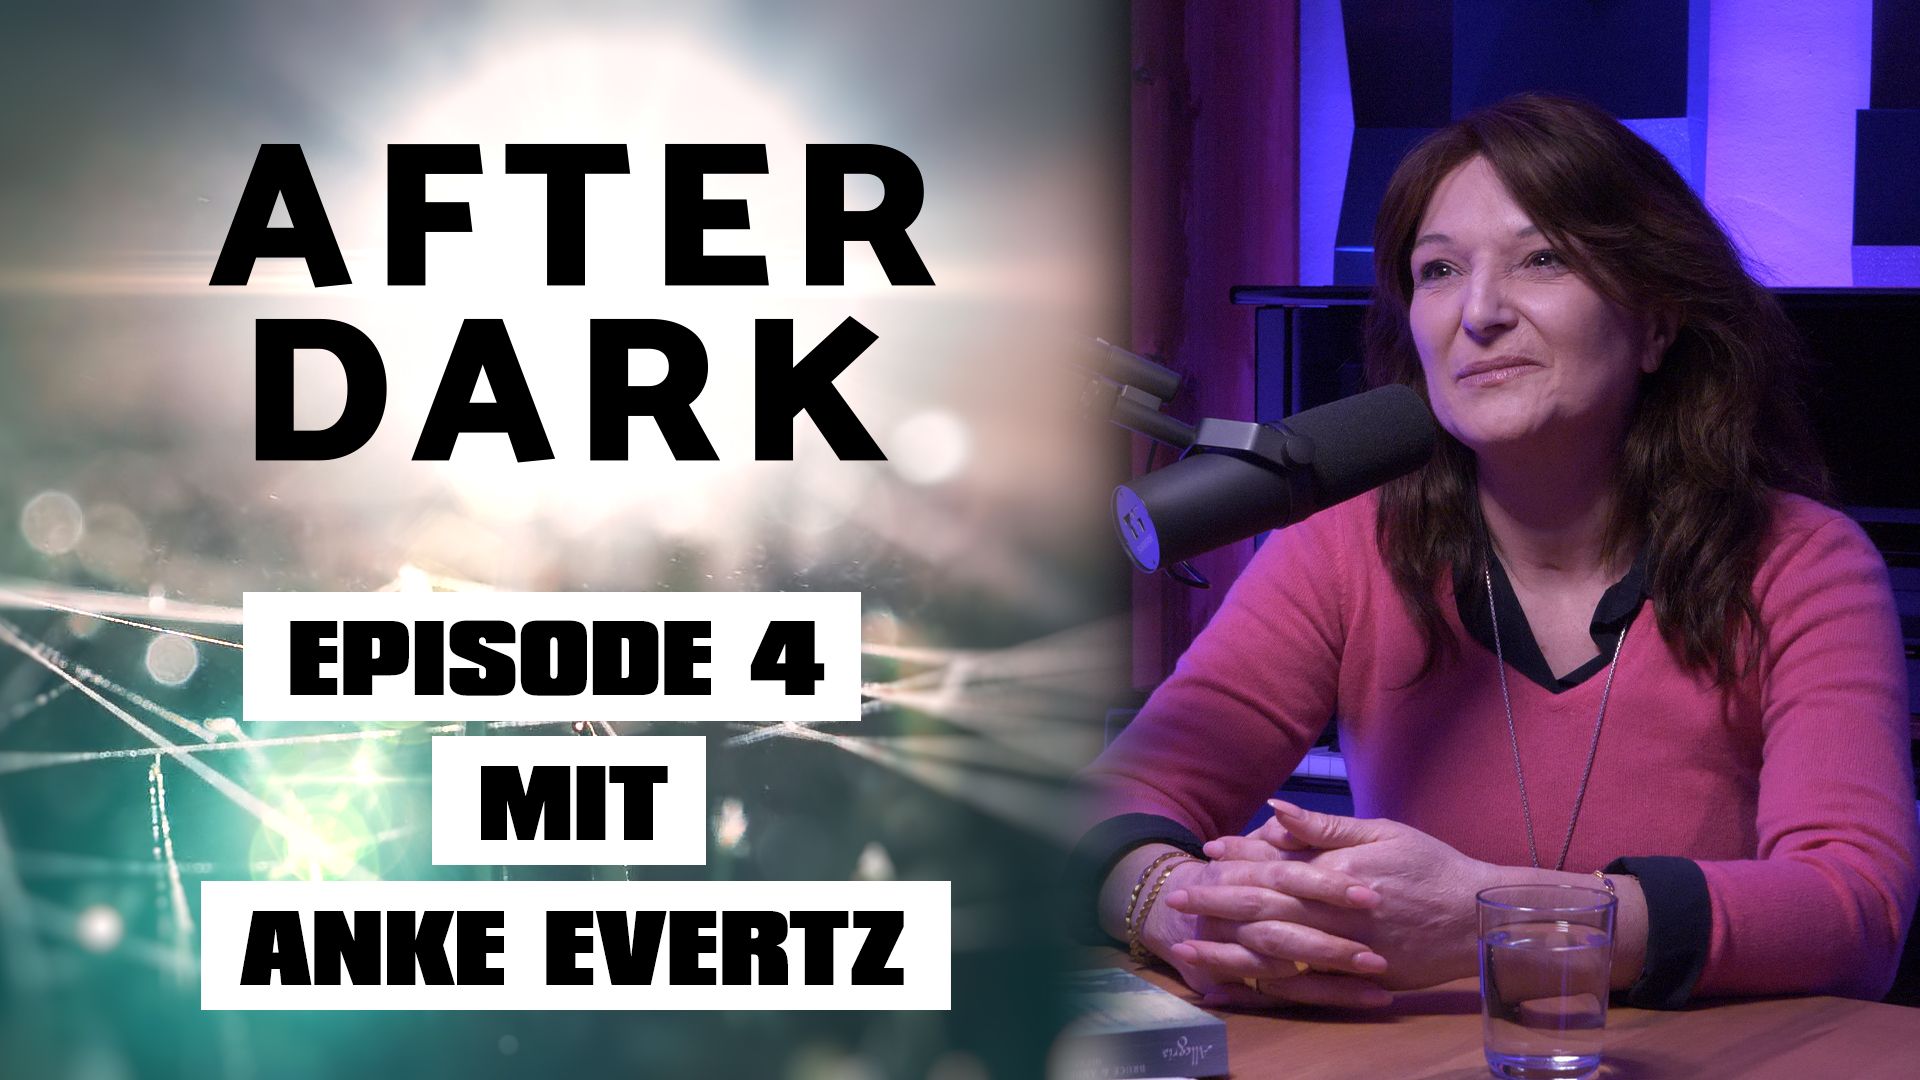 AFTER DARK EPISODE 4 mit Anke Evertz